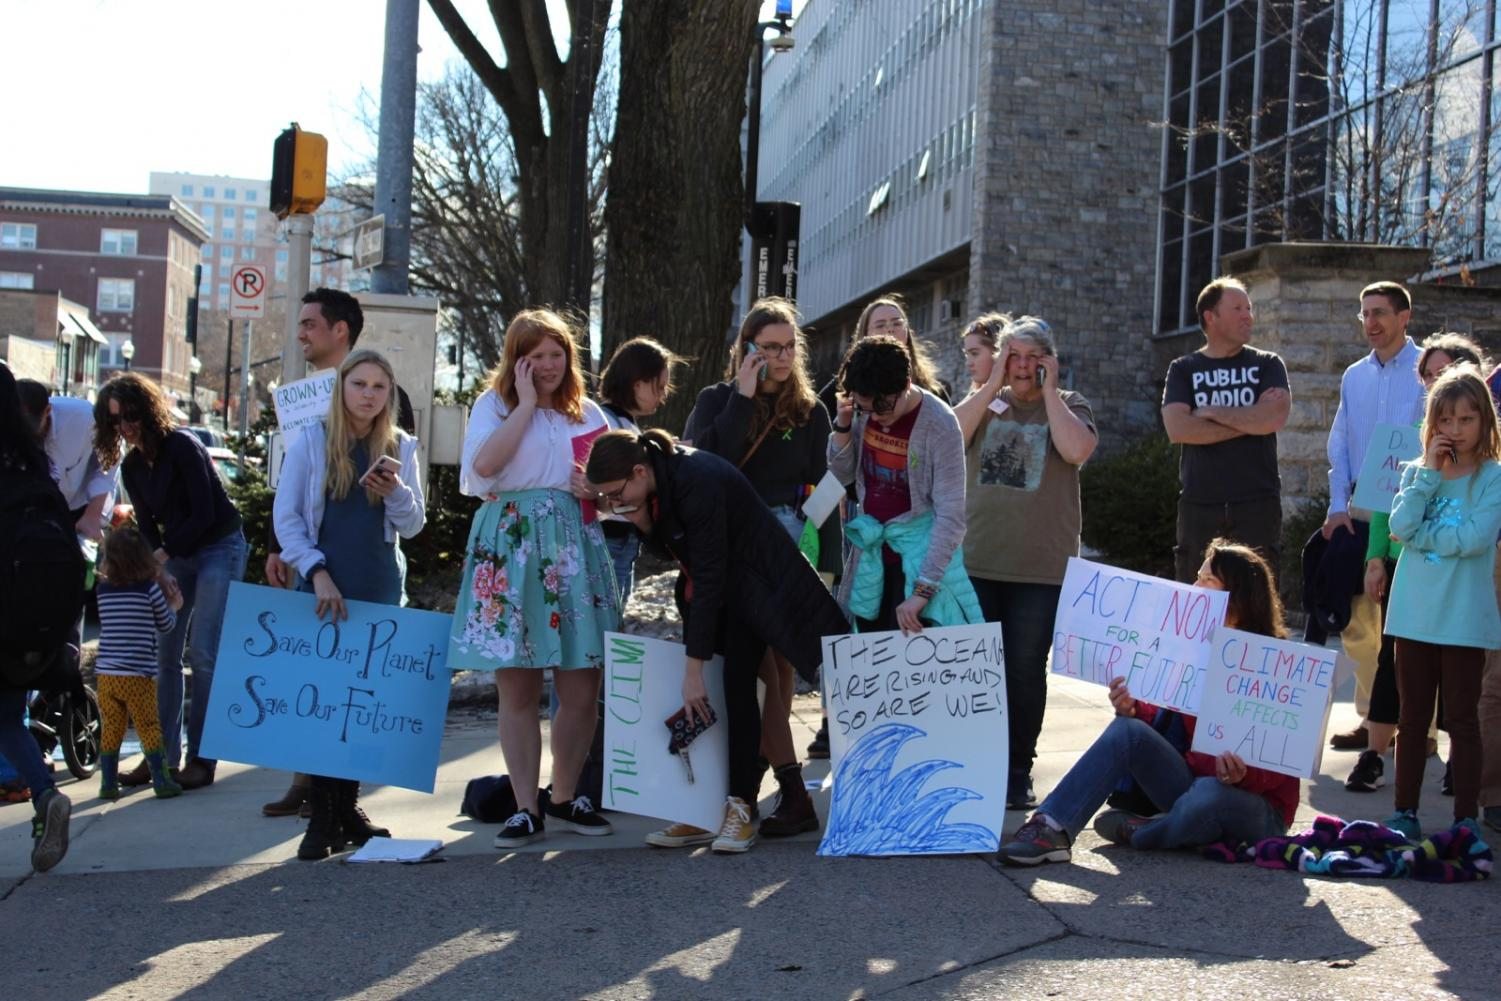 """State High ralliers call their local officials to advocate for climate change on March 15th, 2019. The rally was organized by State High Senior Abbie La Porta. """"The Youth Climate Strike is doing so many amazing things around the country right now. We just started so small and ended up reaching out and finding young people all over who resonated with our message and who are also scared for their futures"""" La Porta said."""